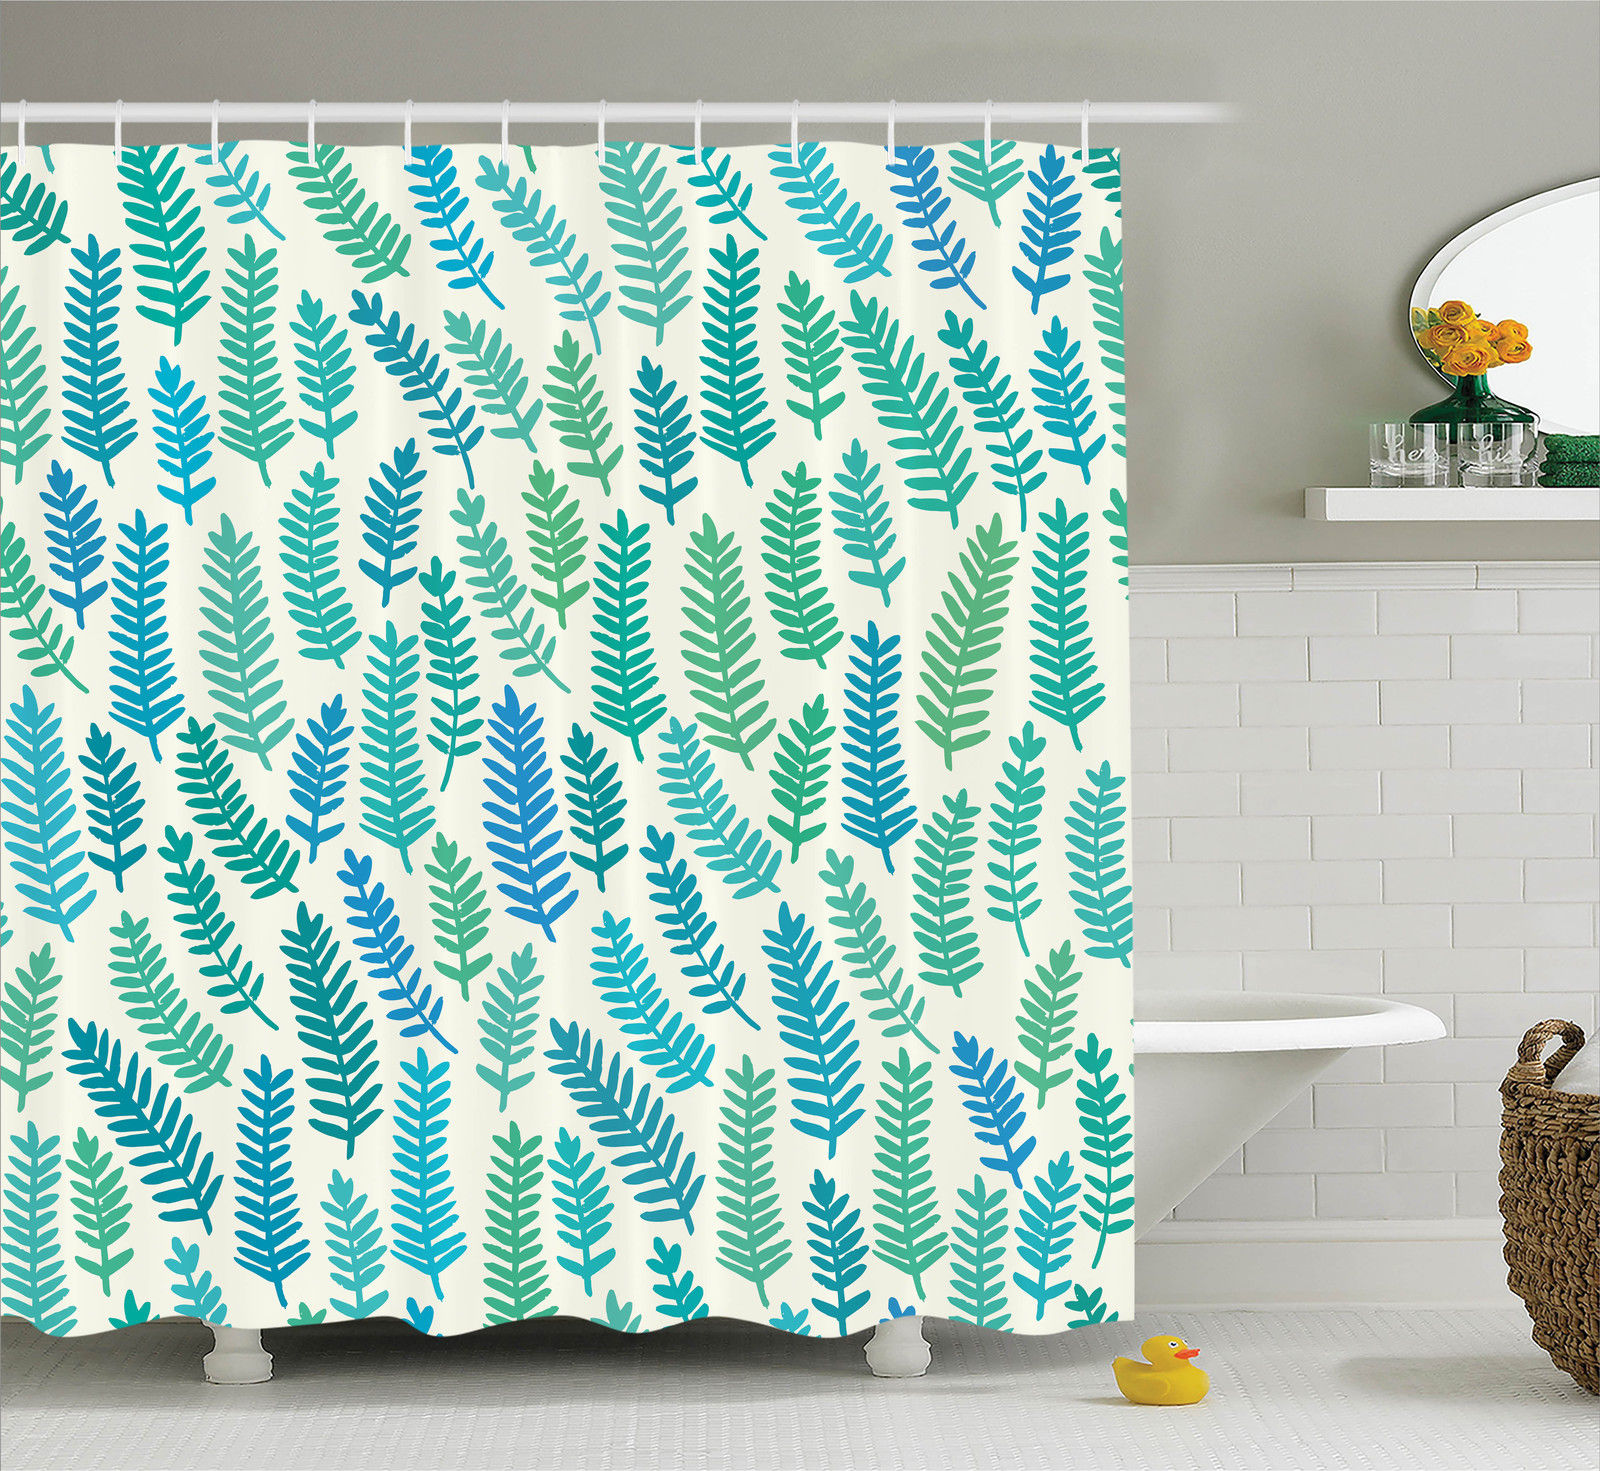 Teal Decor  Leaf Pattern Branch Trees Summer Forest Foliage Fabric Design Style Art Print, Bathroom Accessories, 69W X 84L Inches Extra Long, By Ambesonne